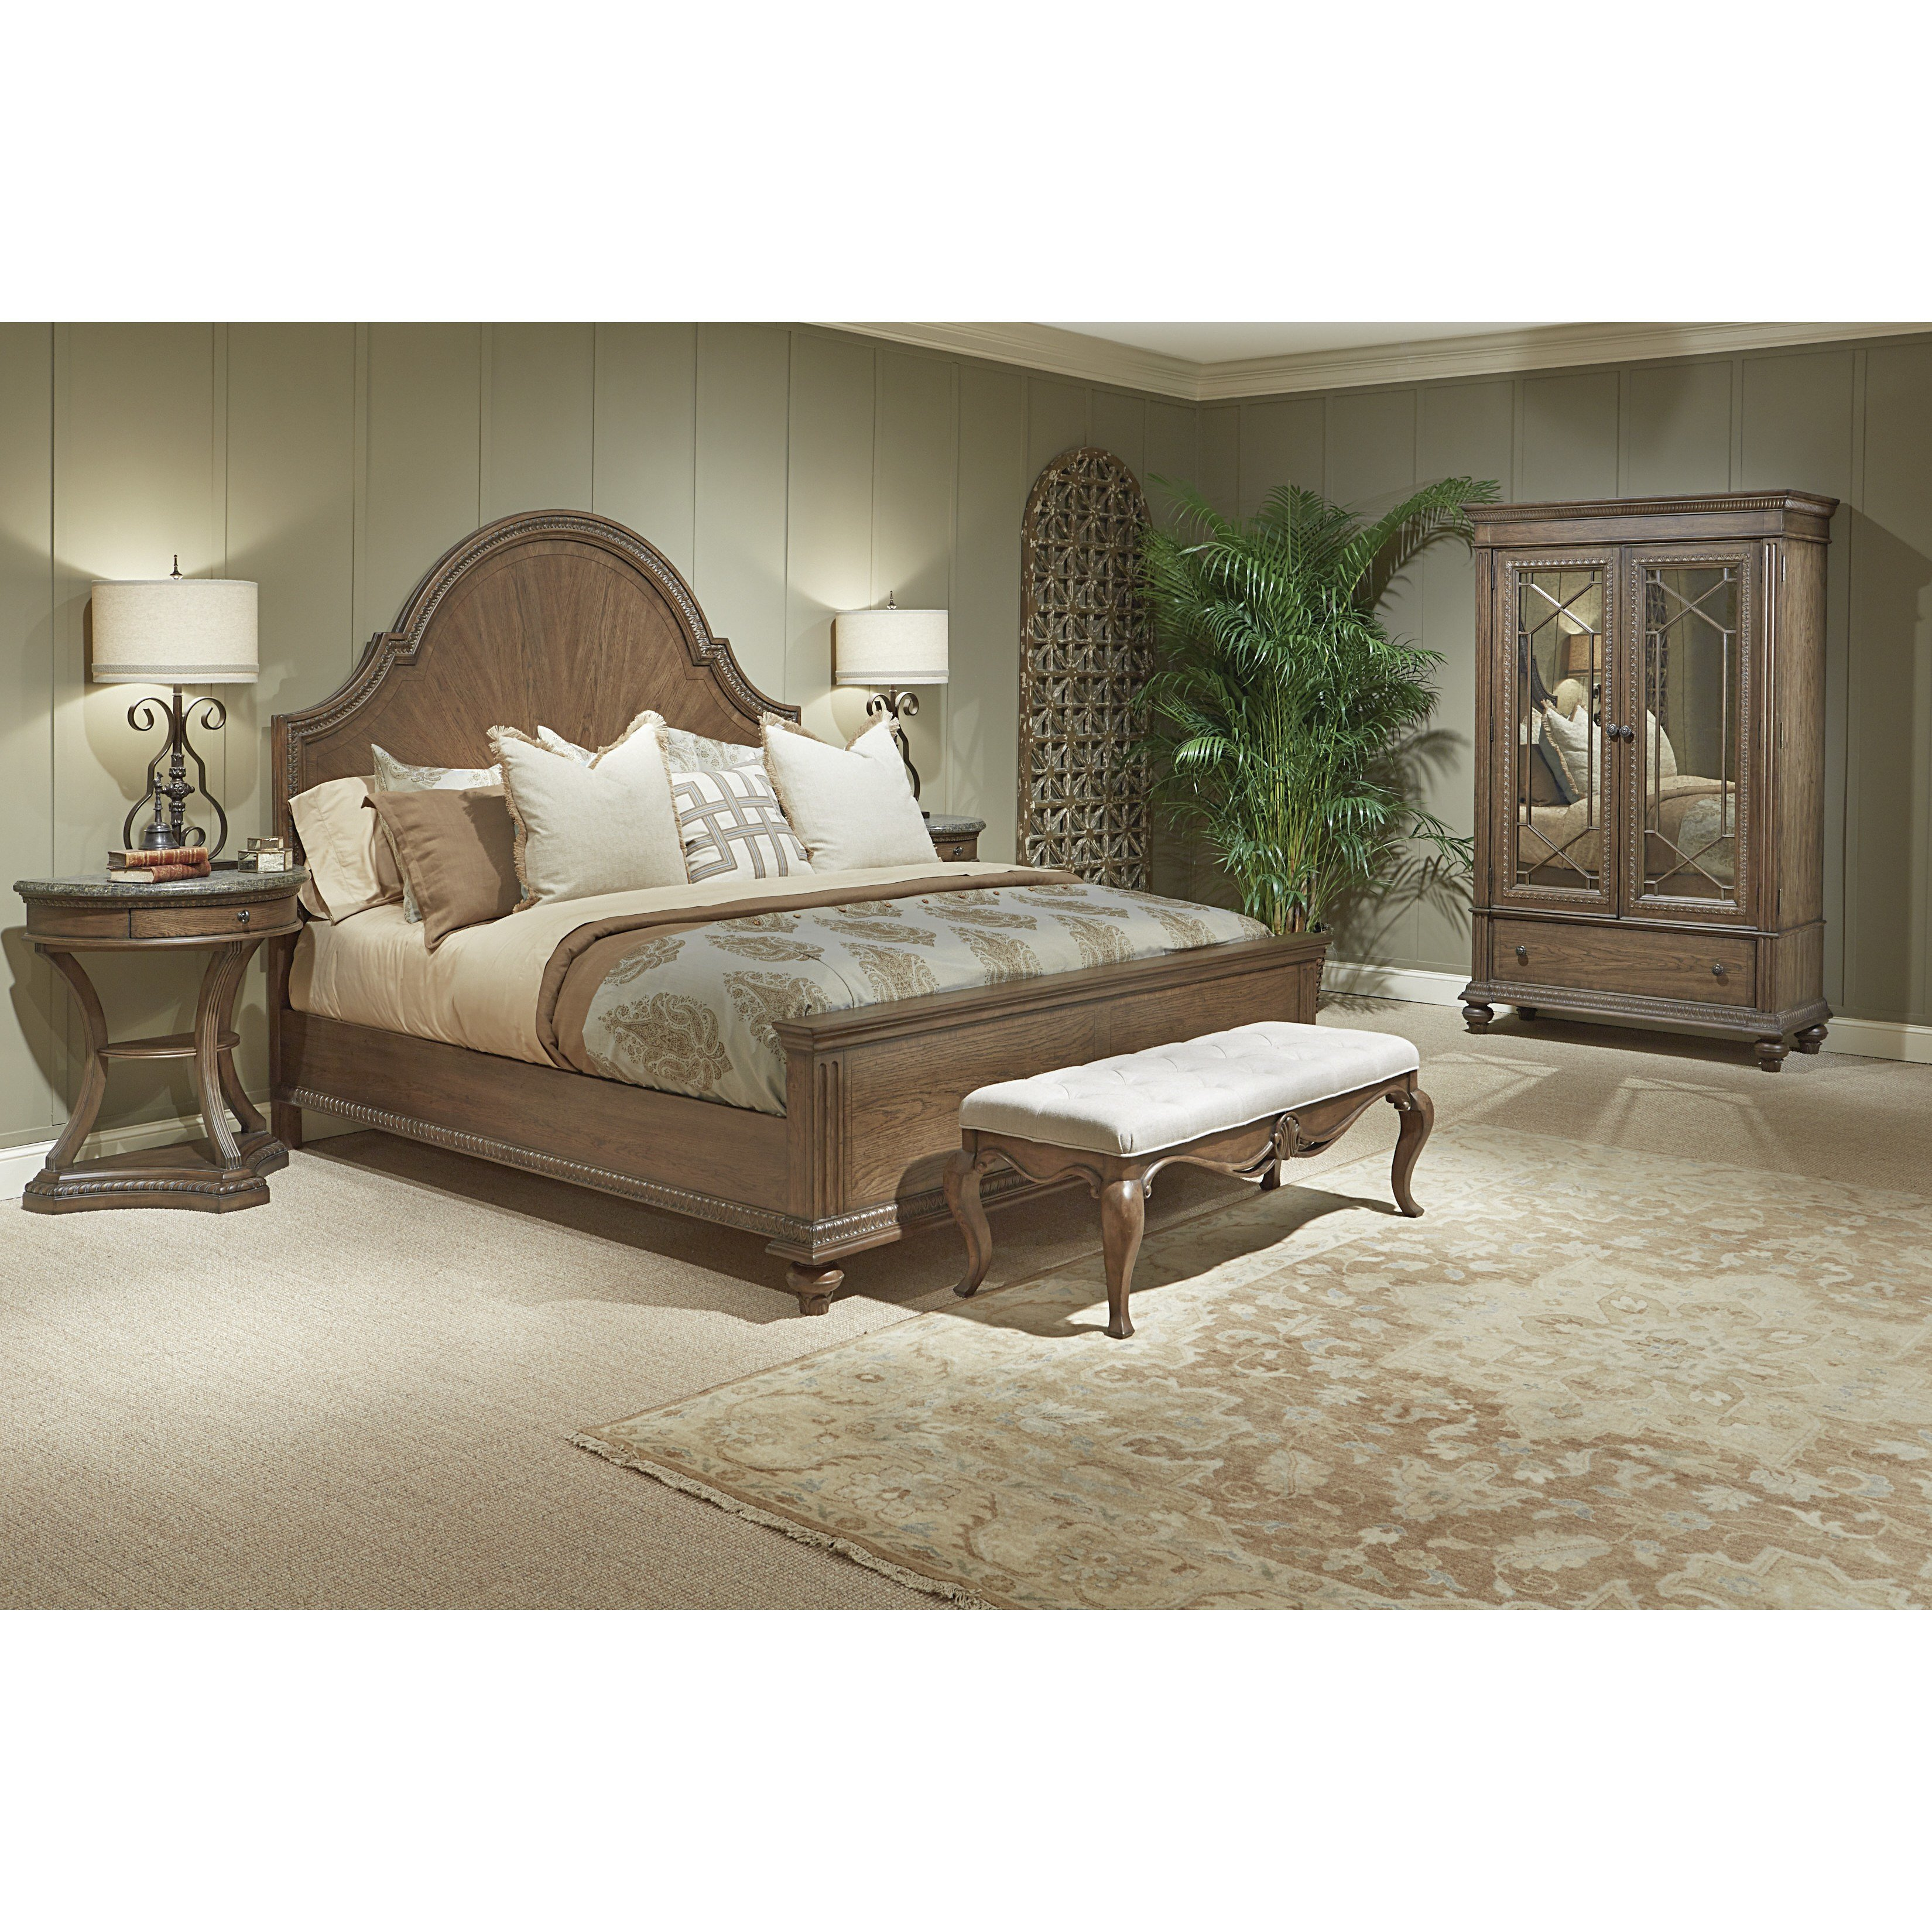 Best Legacy Classic Furniture Renaissance Arched Panel Customizable Bedroom Set Reviews Wayfair With Pictures